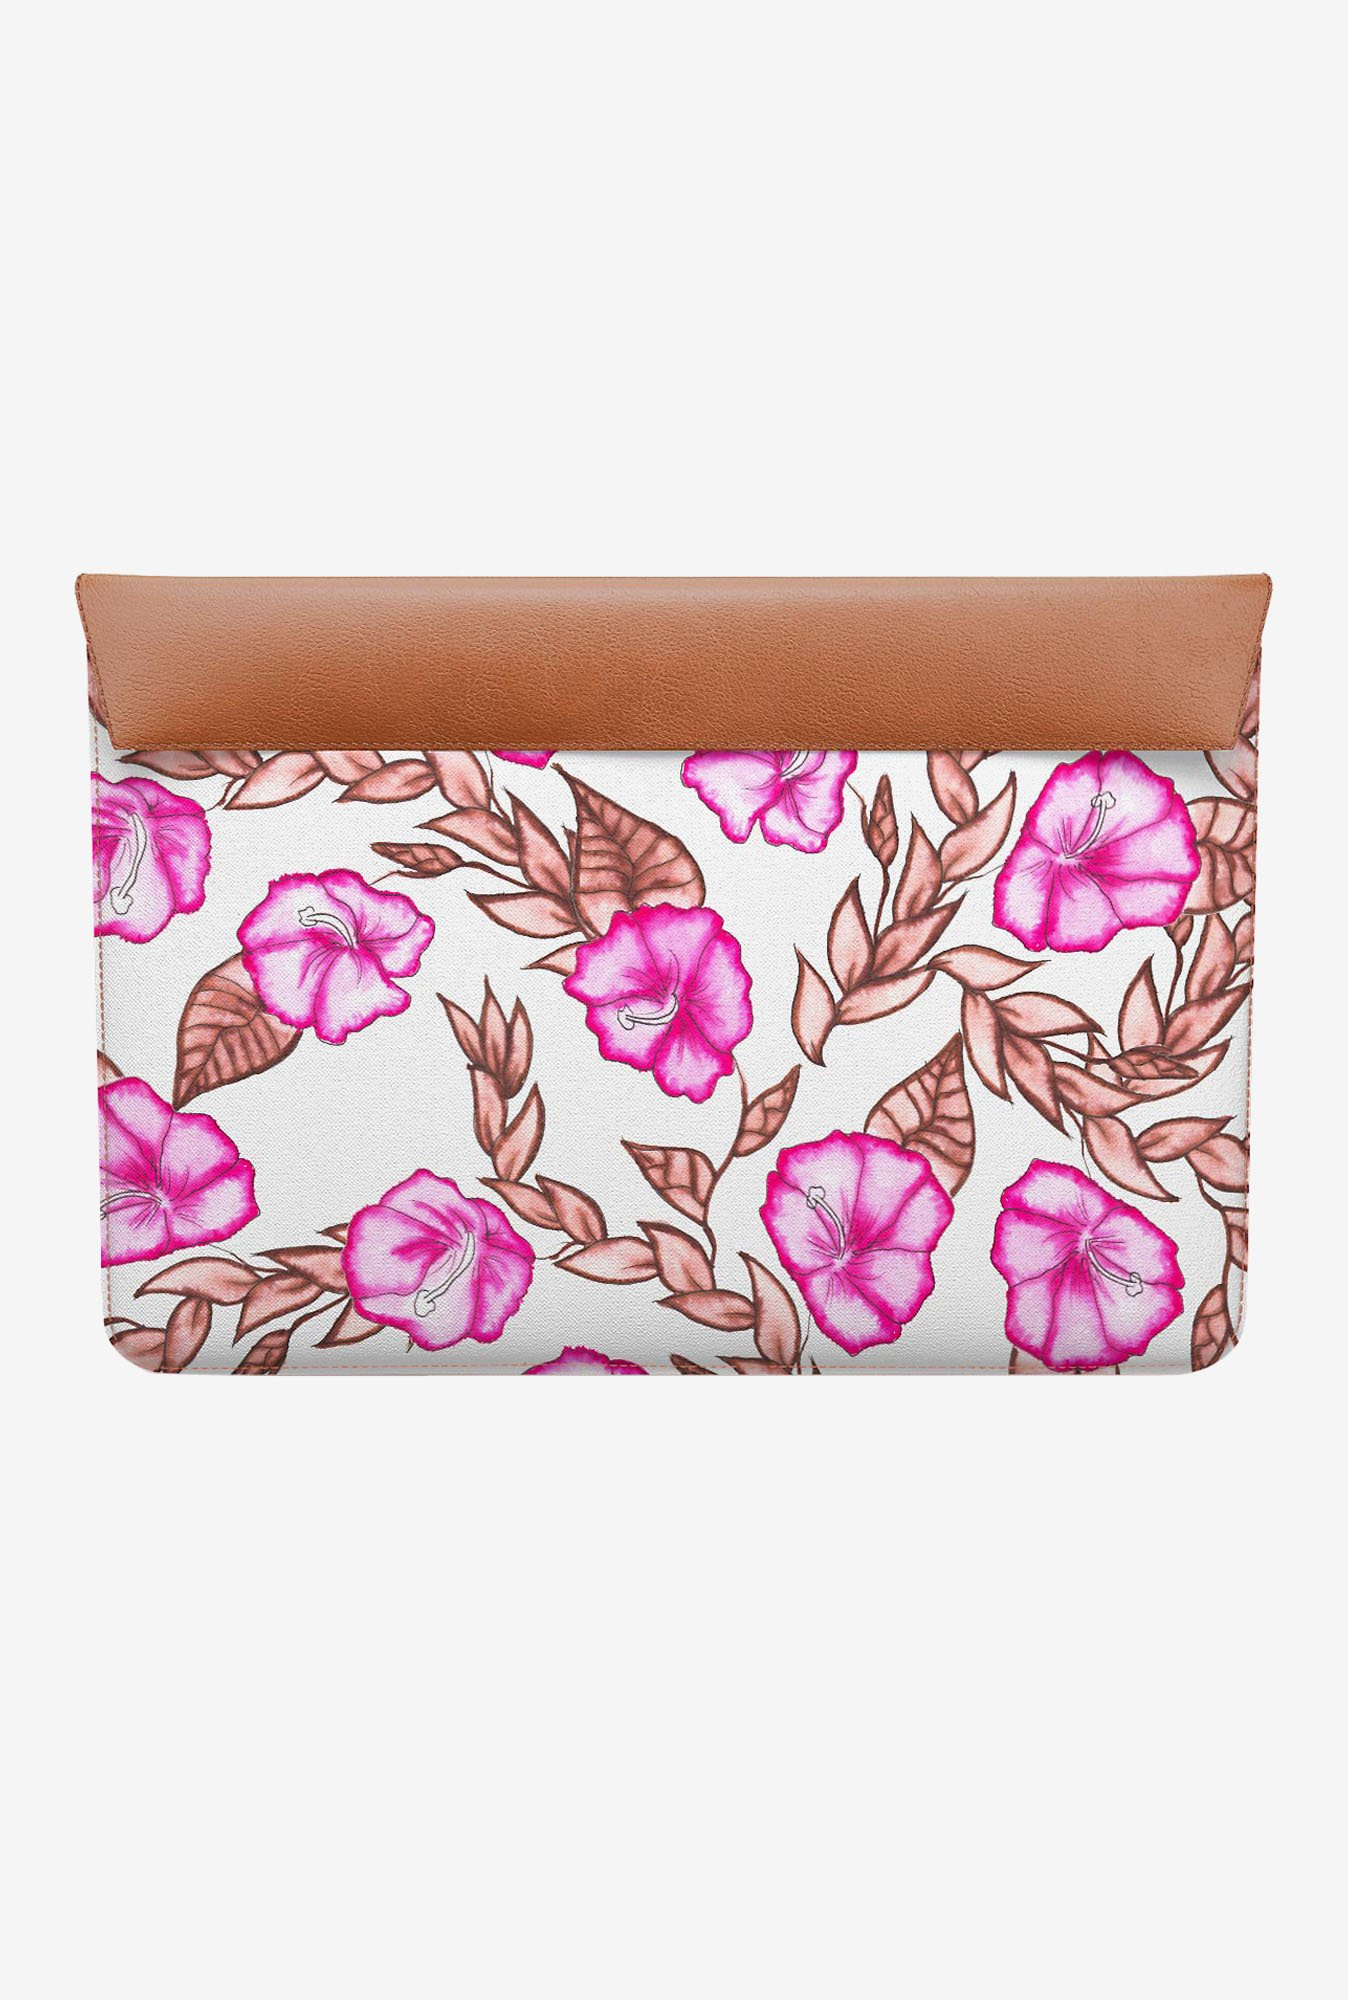 DailyObjects Pink Floral MacBook Air 11 Envelope Sleeve